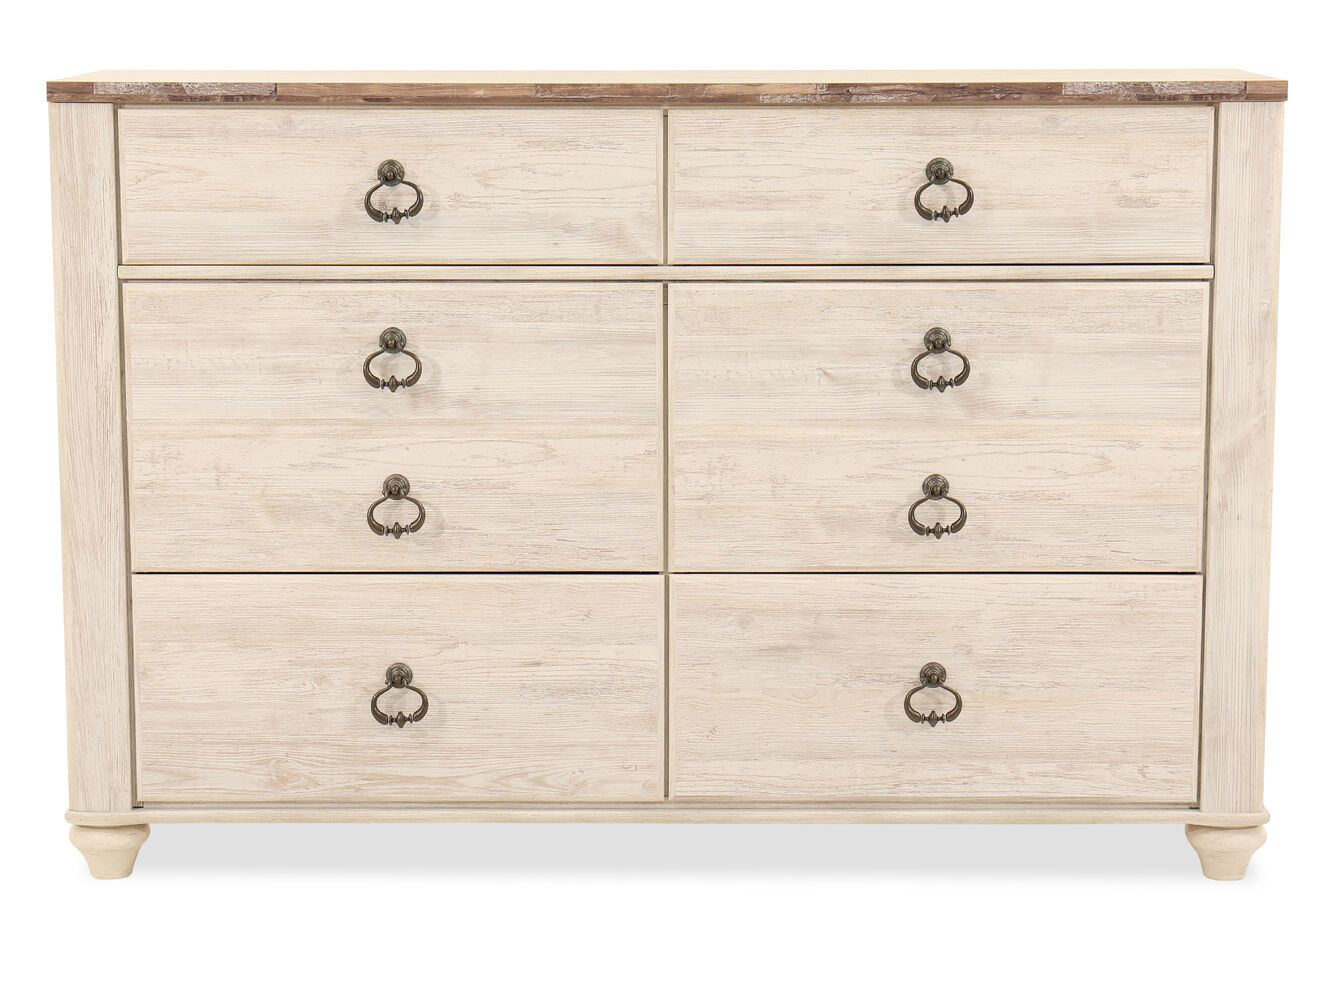 Ashley willowton dresser mathis brothers furniture - Ashley furniture bedroom dressers ...